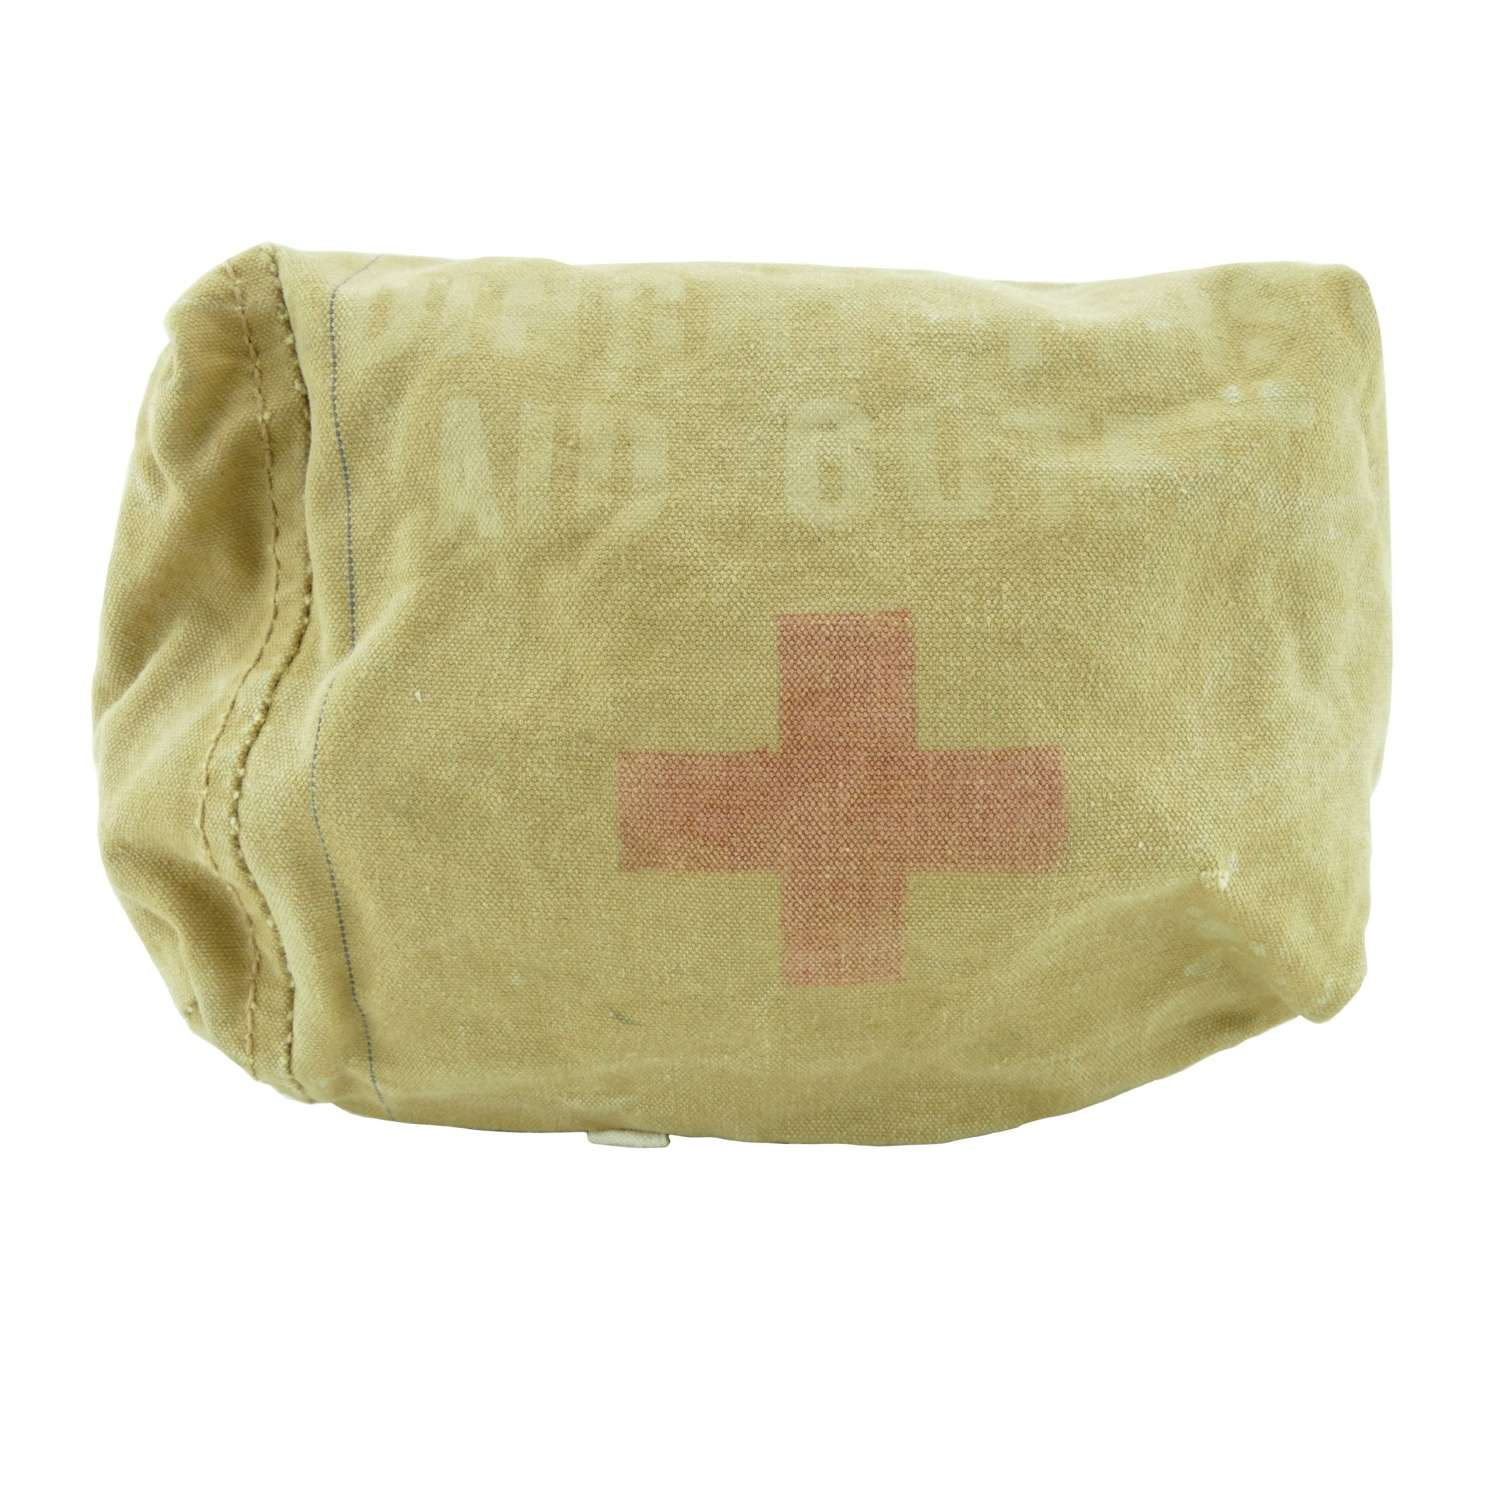 RAF dinghy first aid outfit